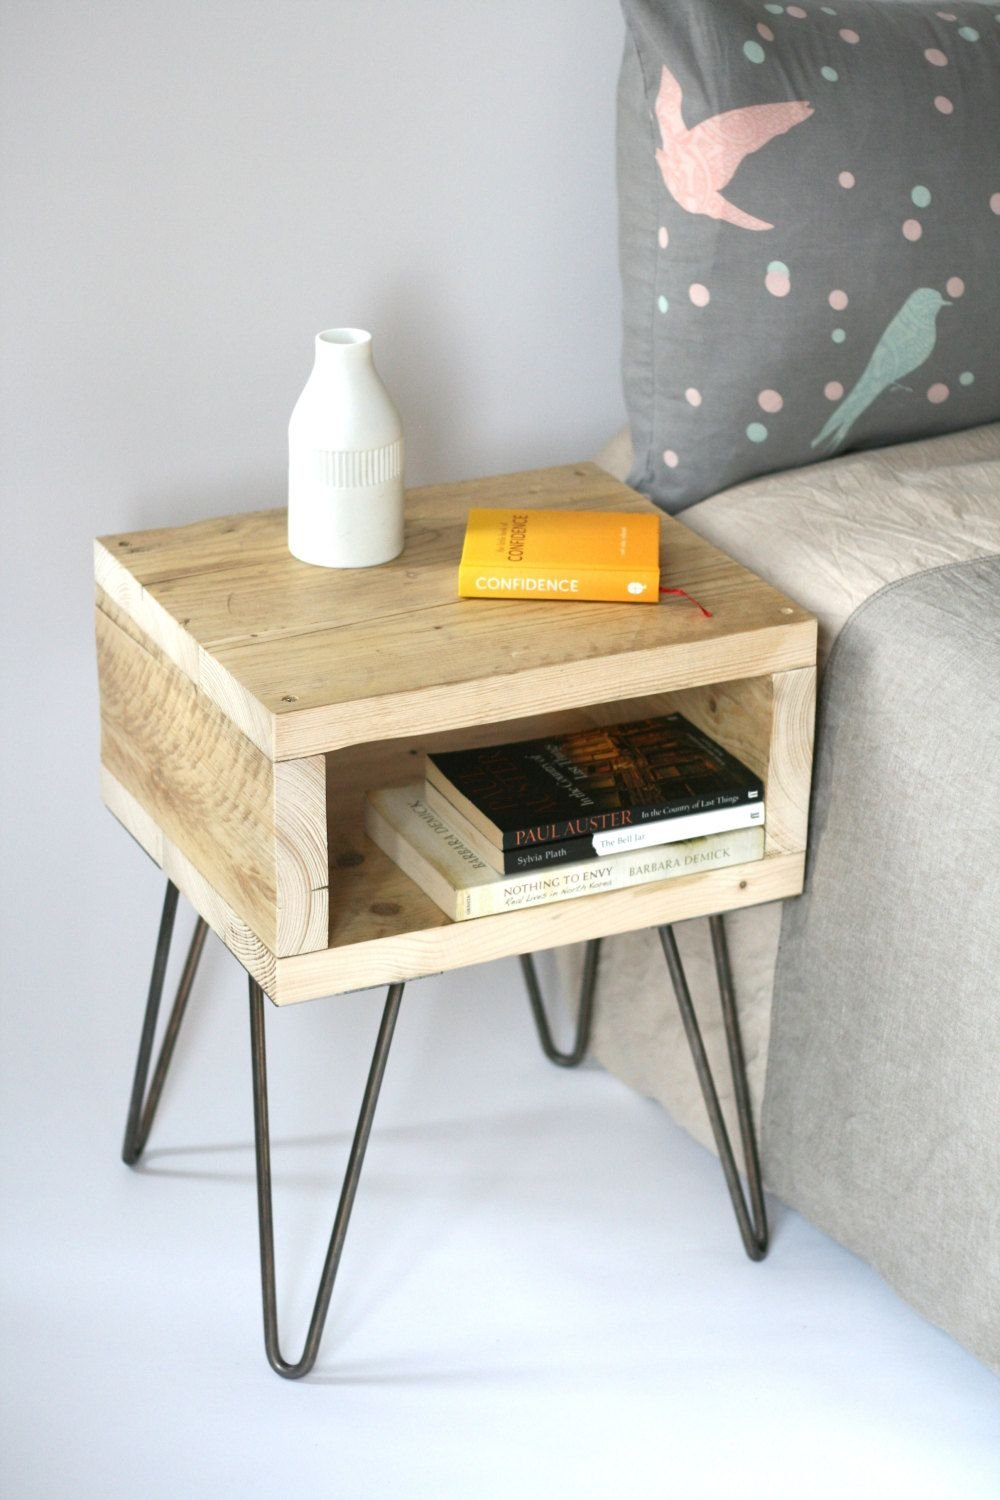 Blondie Bedside Table Reclaimed Wood Side Table How To Reclaimed Wood Side Table